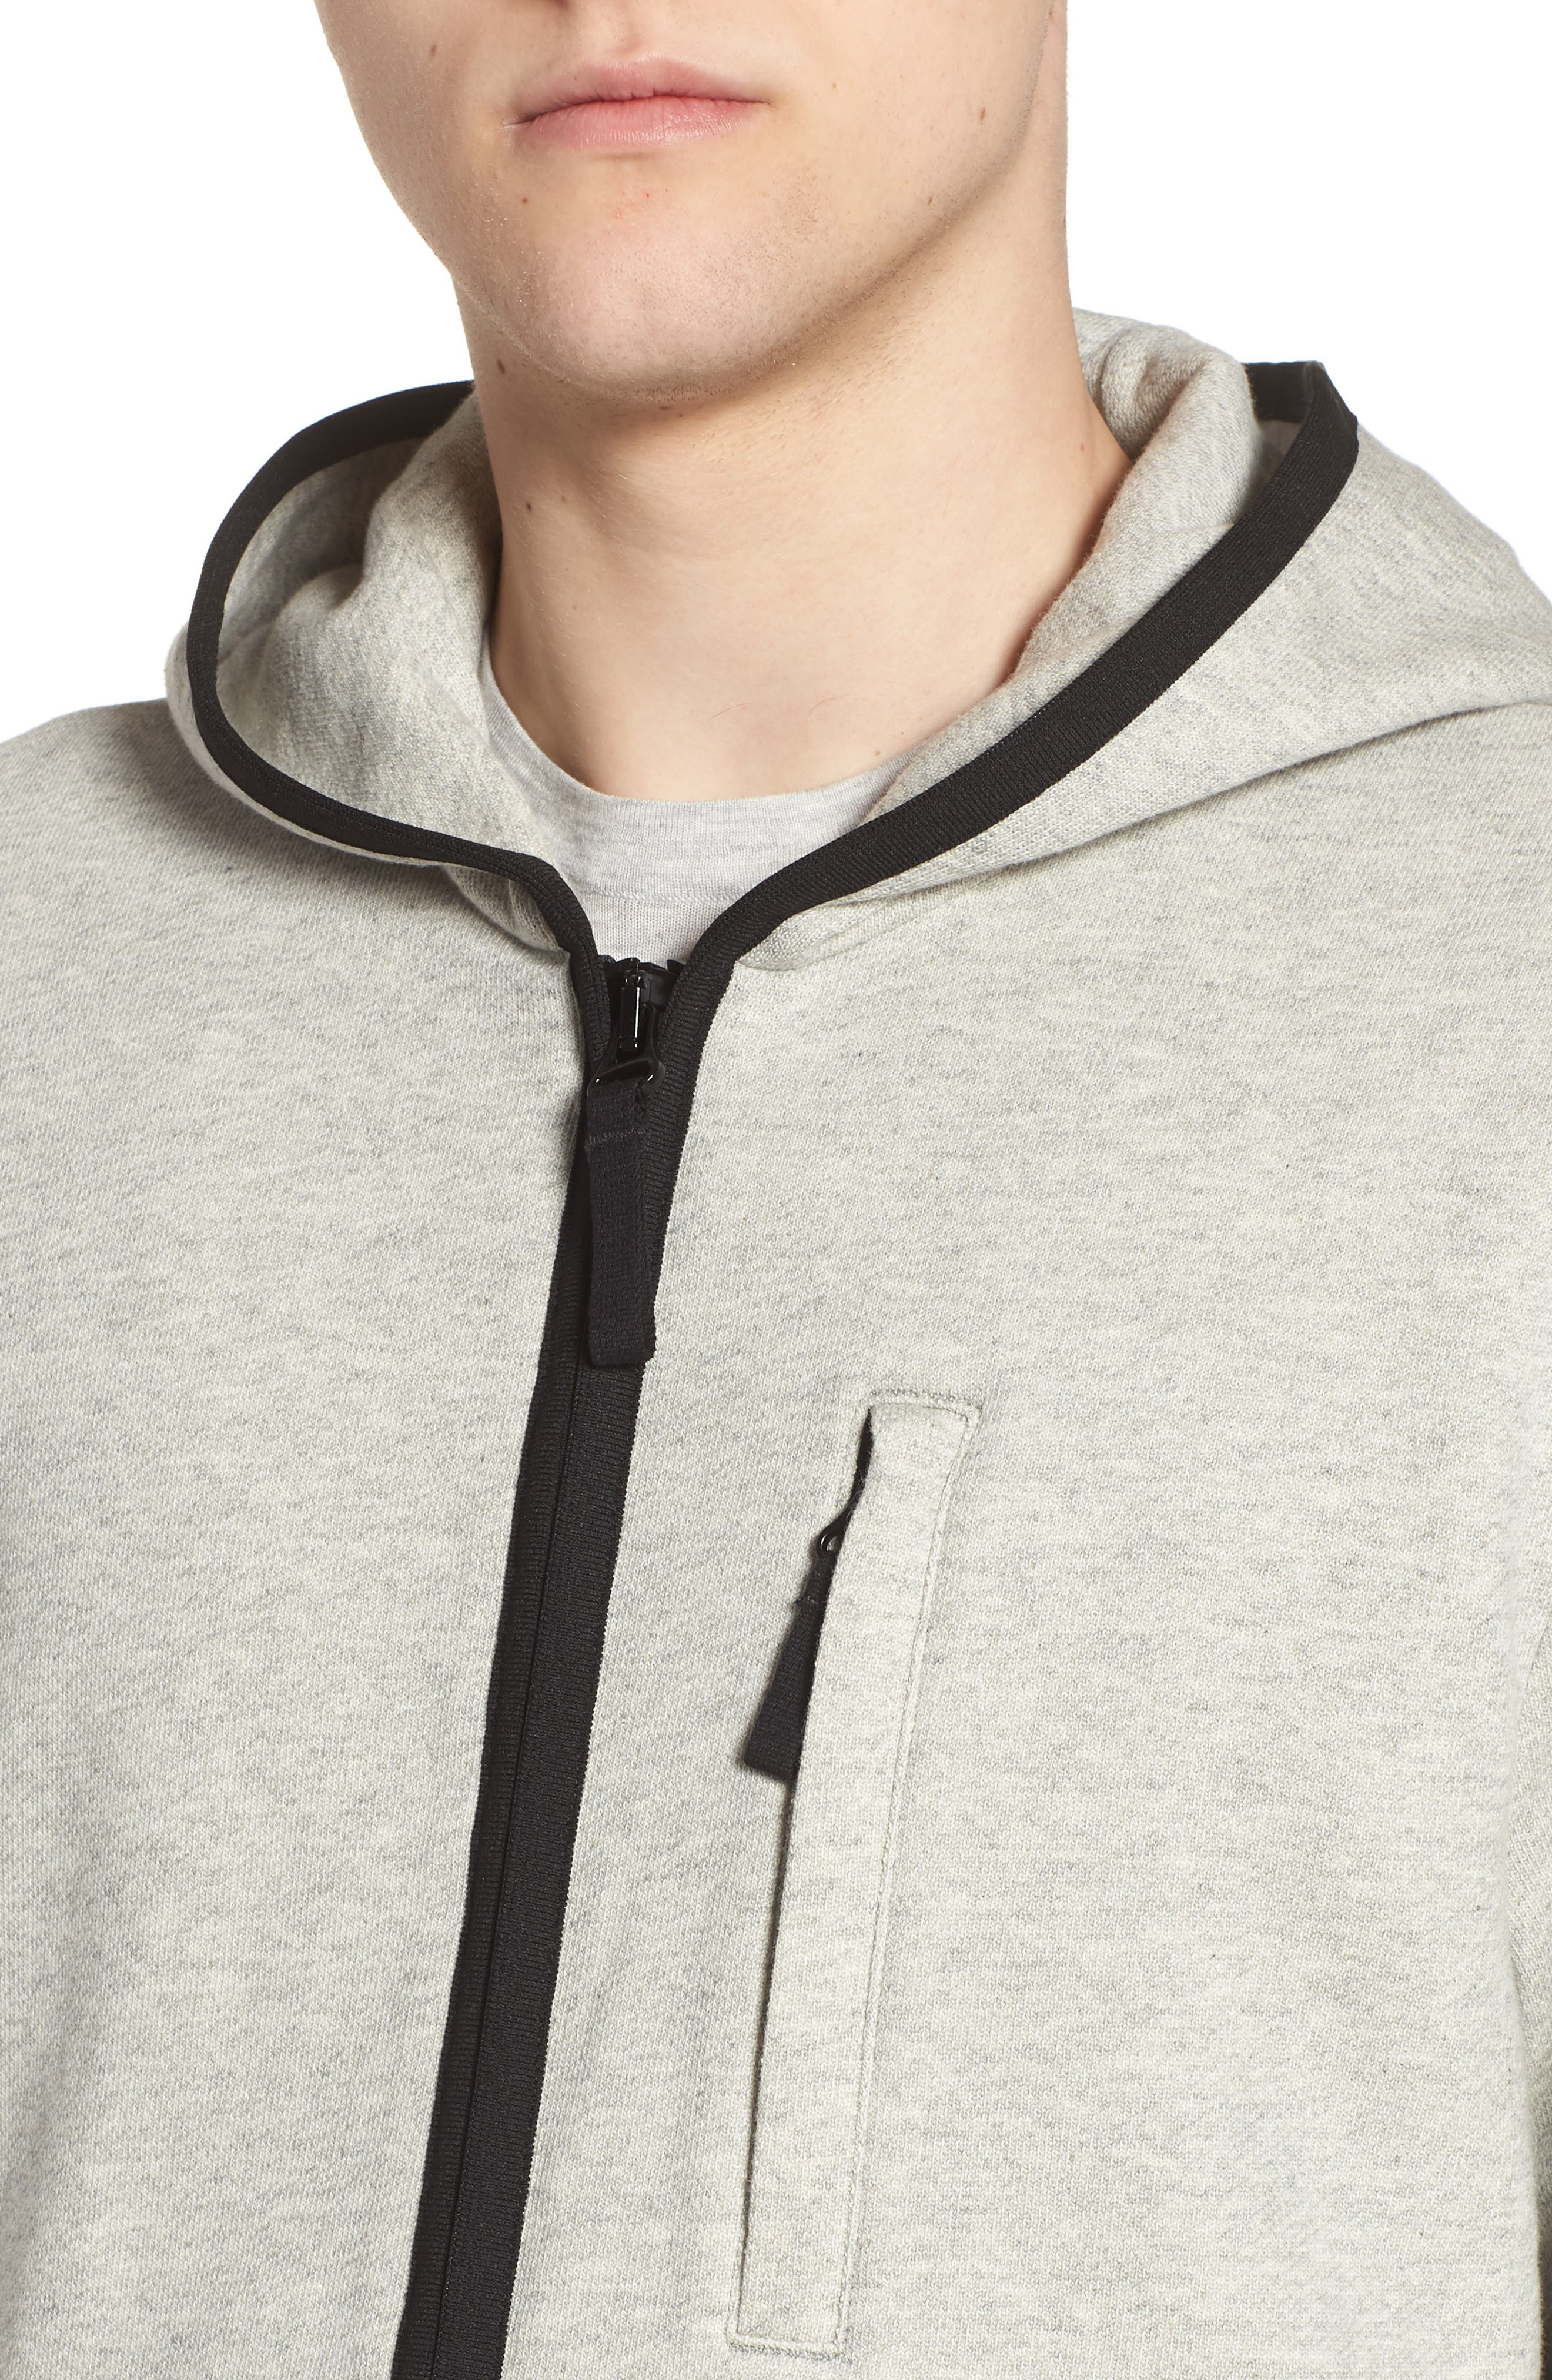 French Terry Zip Hoodie,                             Alternate thumbnail 4, color,                             Heather Grey/ Black